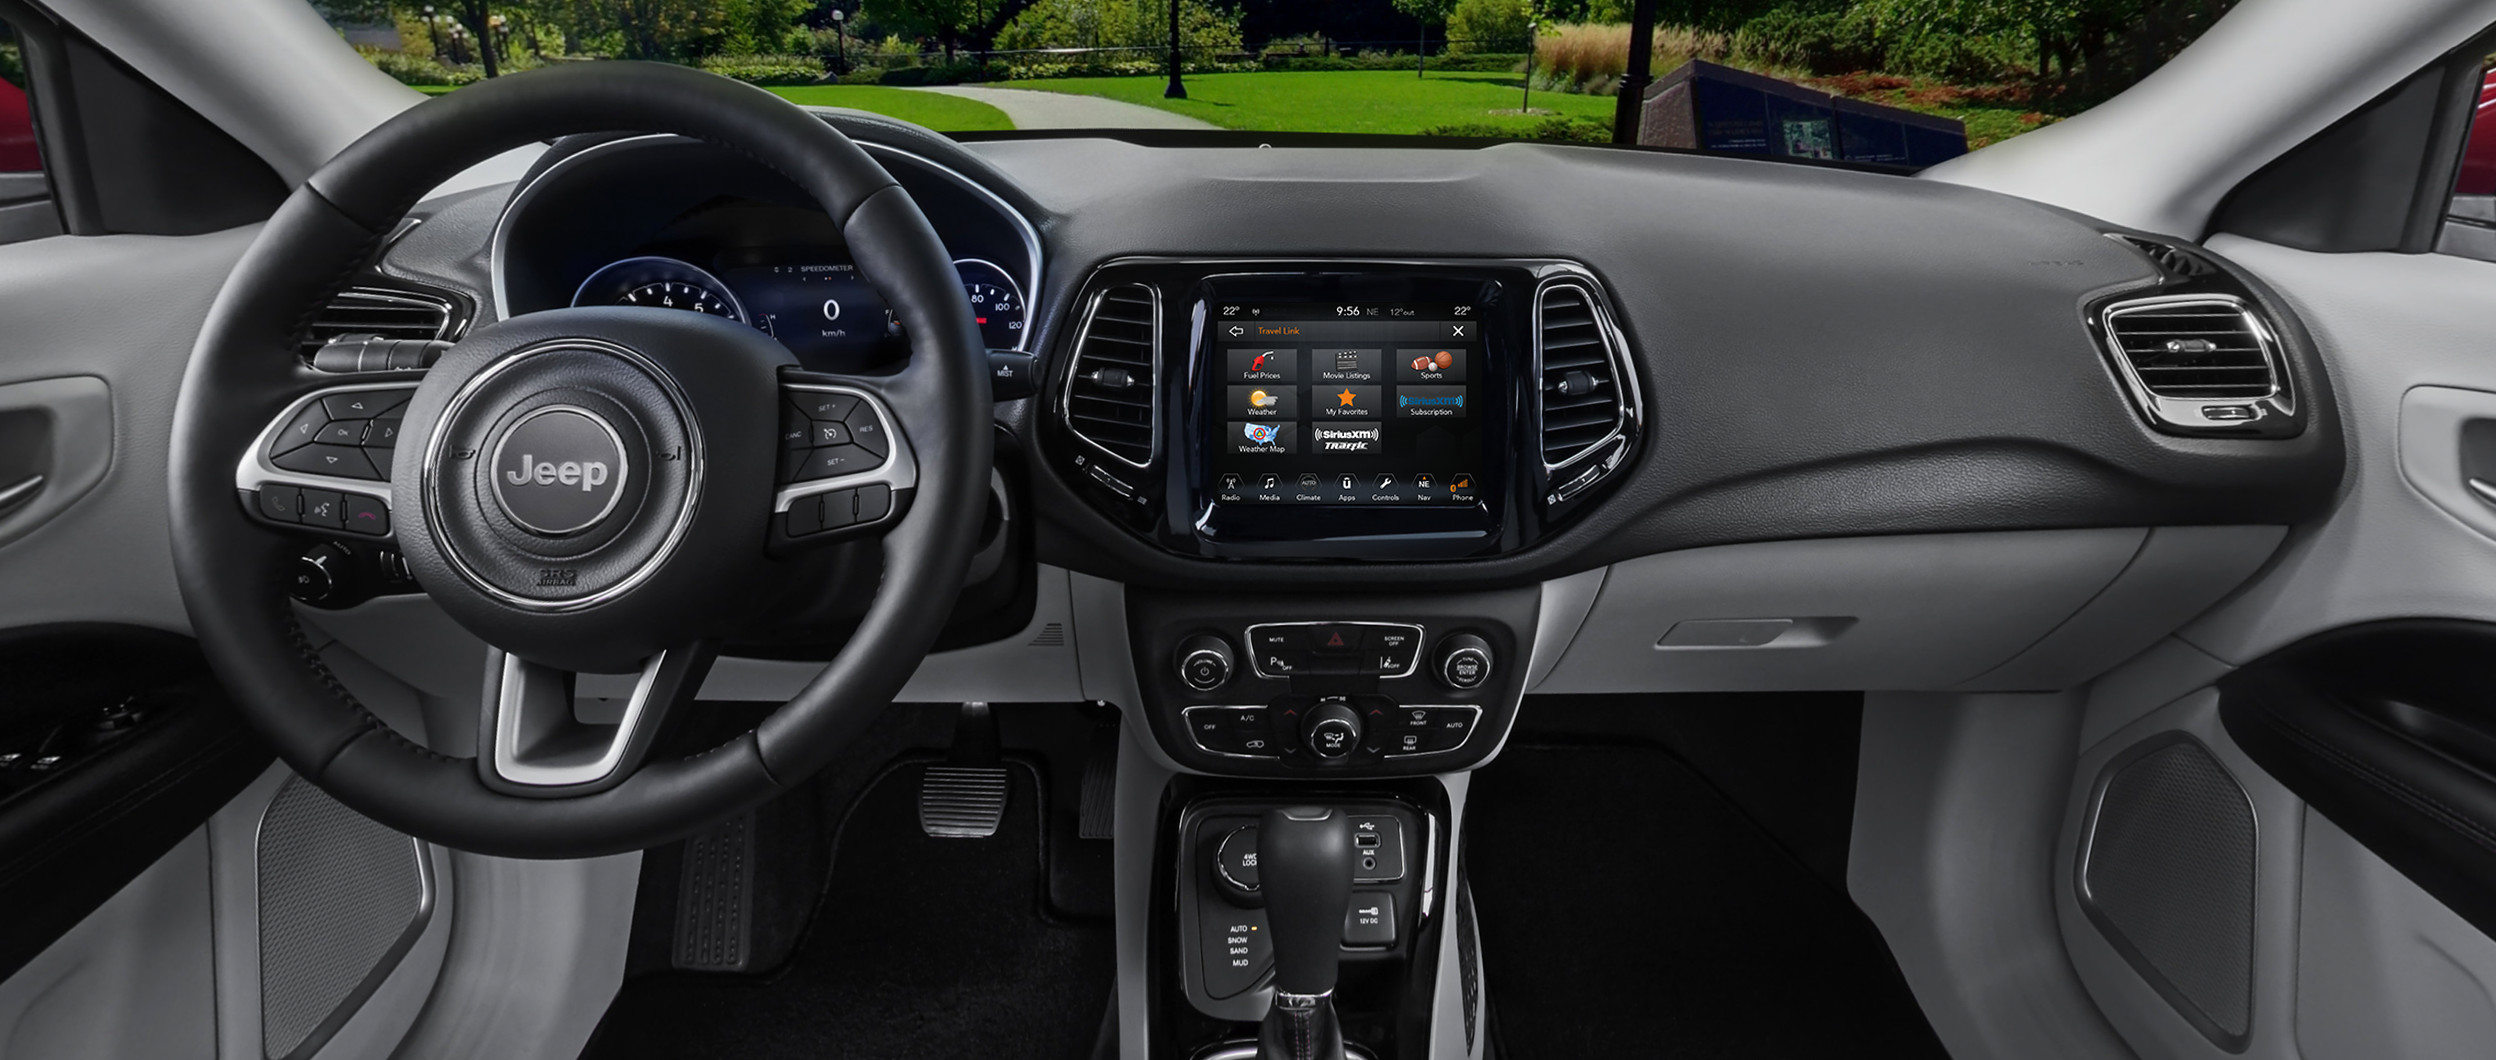 jeep compass 2014 interior